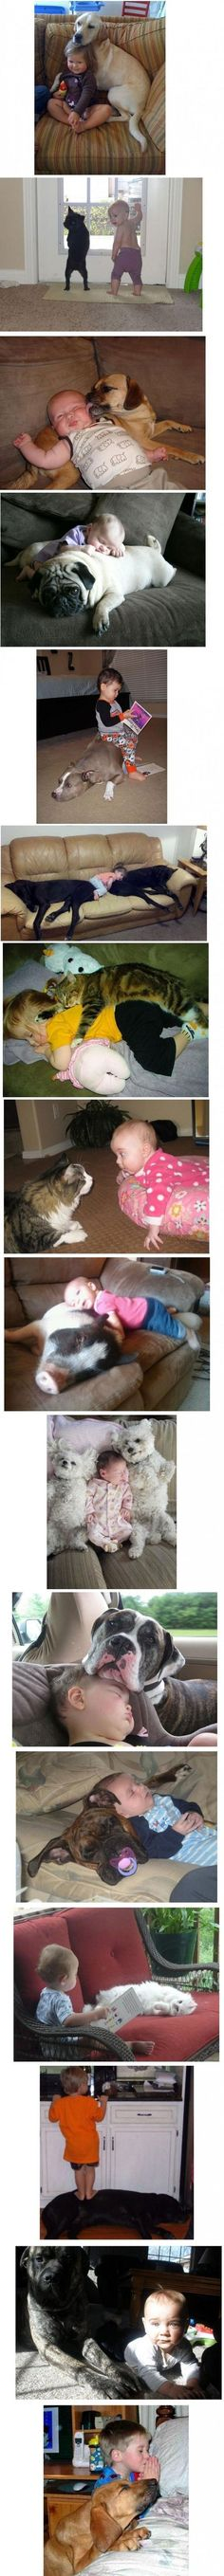 Why kids and their pets are such good friends.